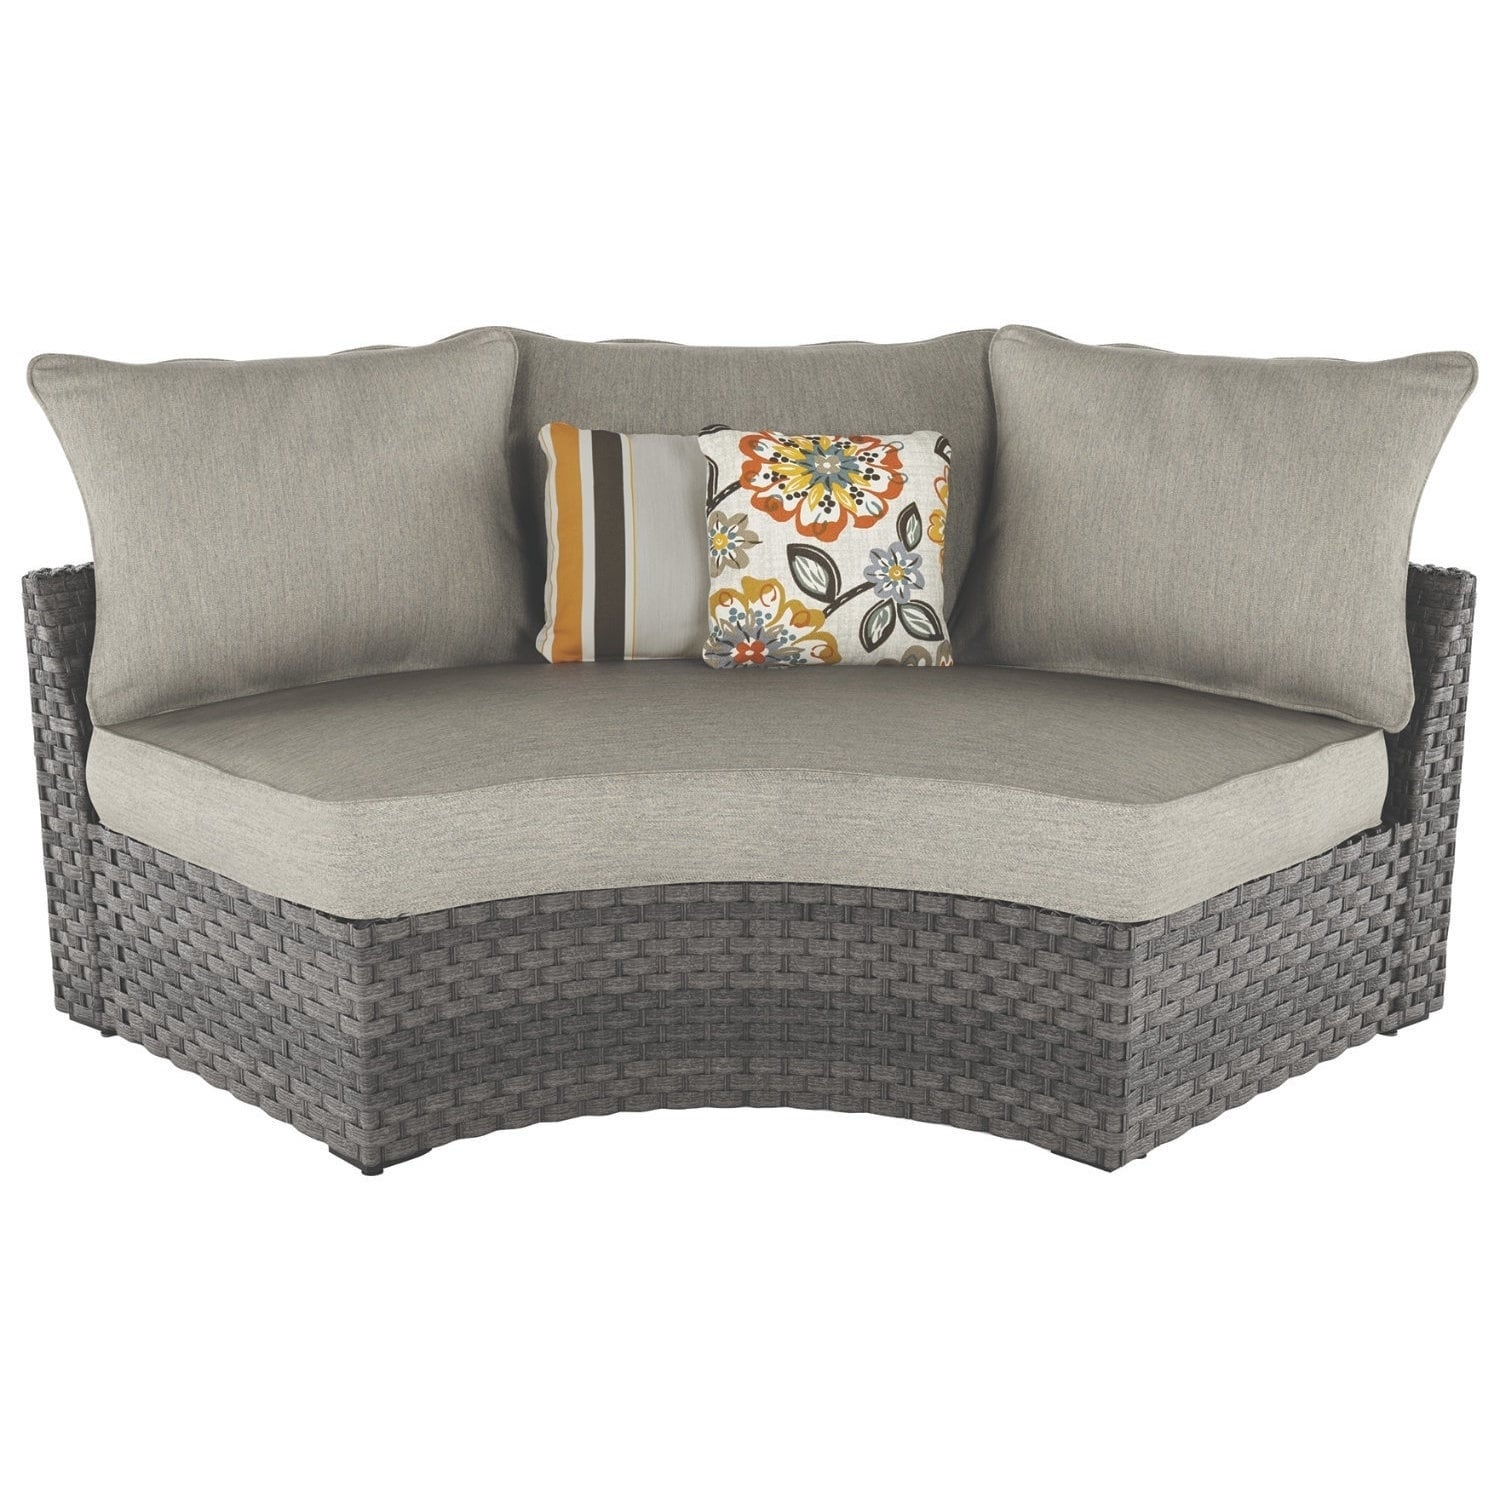 Spring Dew Outdoor Curved Corner Chair - Gray